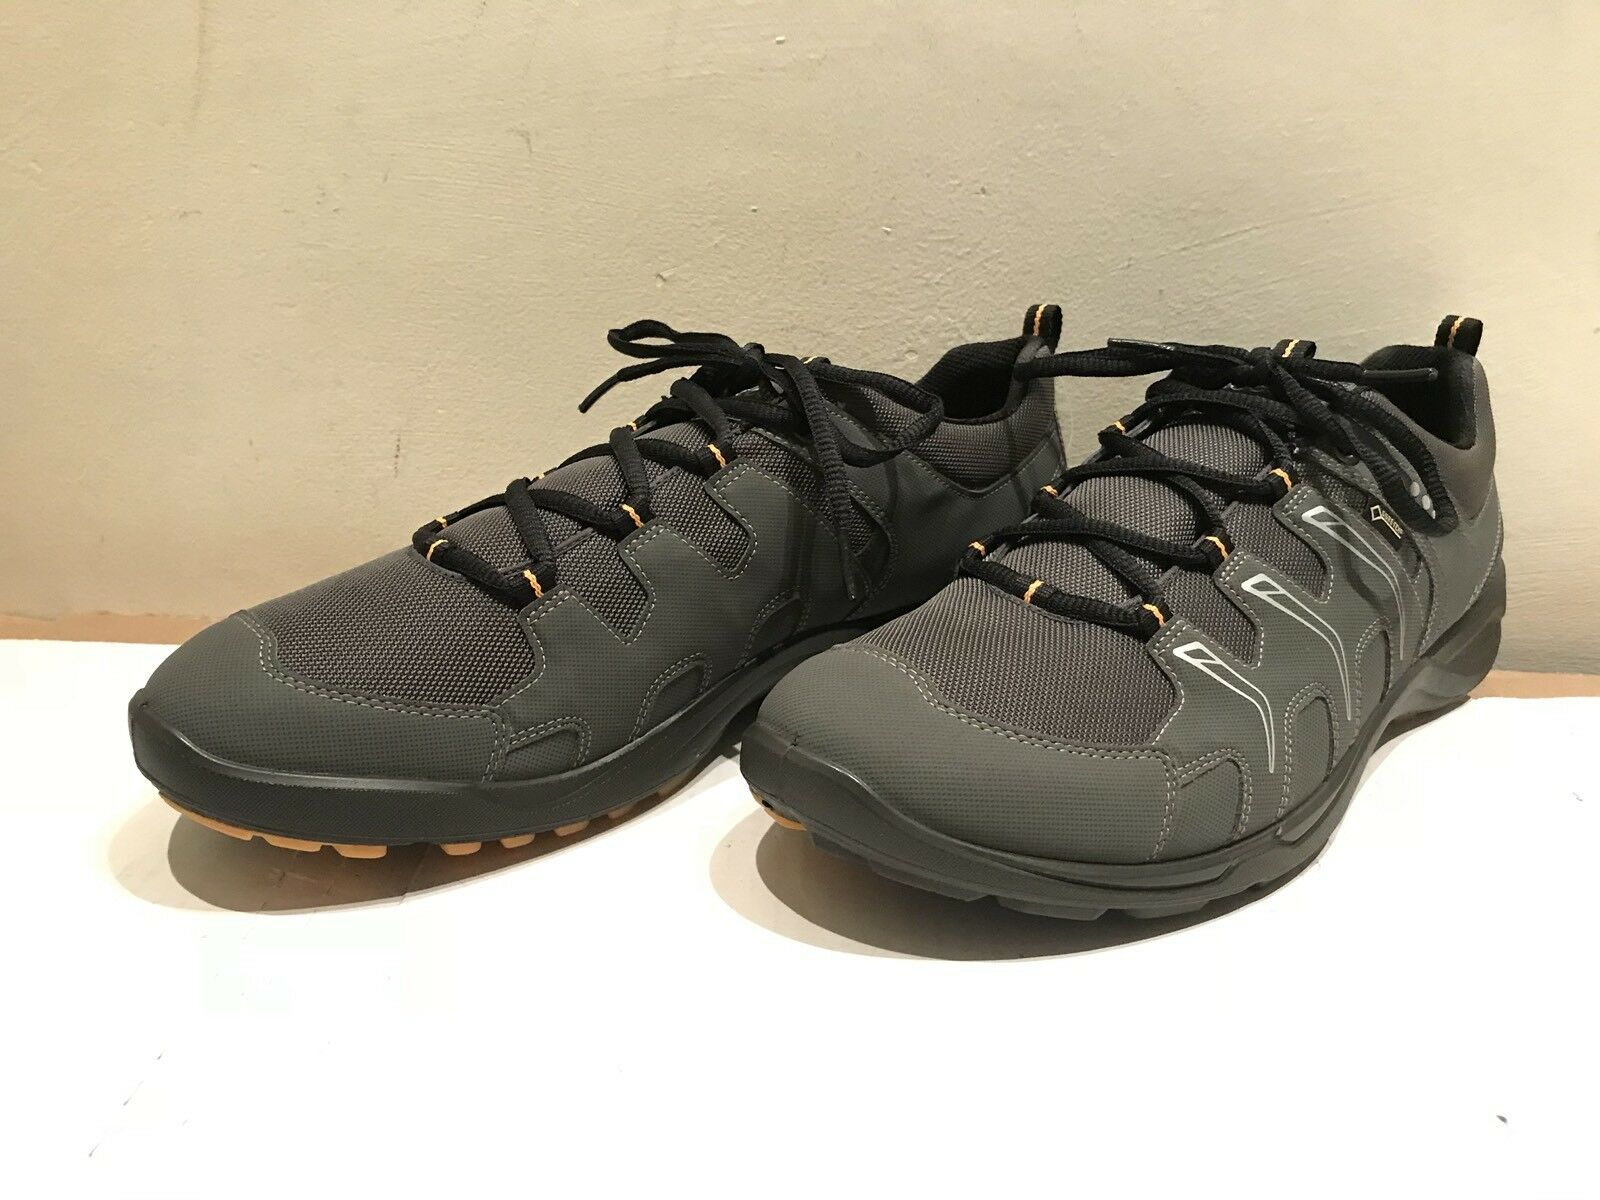 ECCO GORE-TEX WATERPROOF RUBBER GRIP SOLE PERFORMANCE Chaussures SZ 45/12